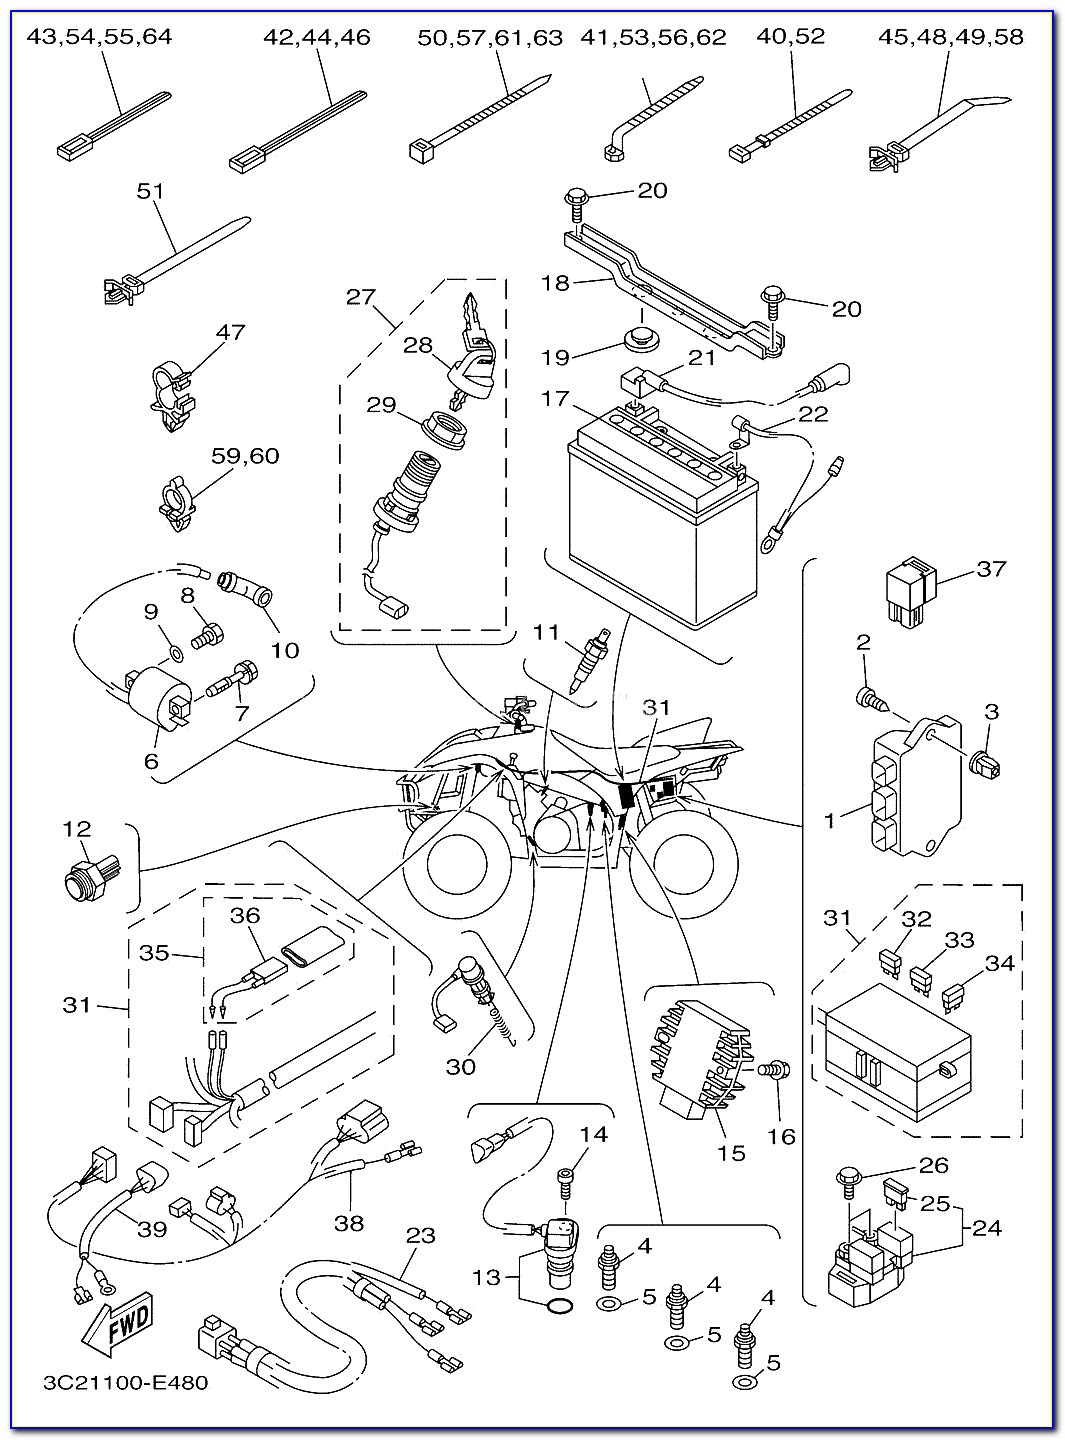 2002 Yamaha Blaster Carburetor Diagram